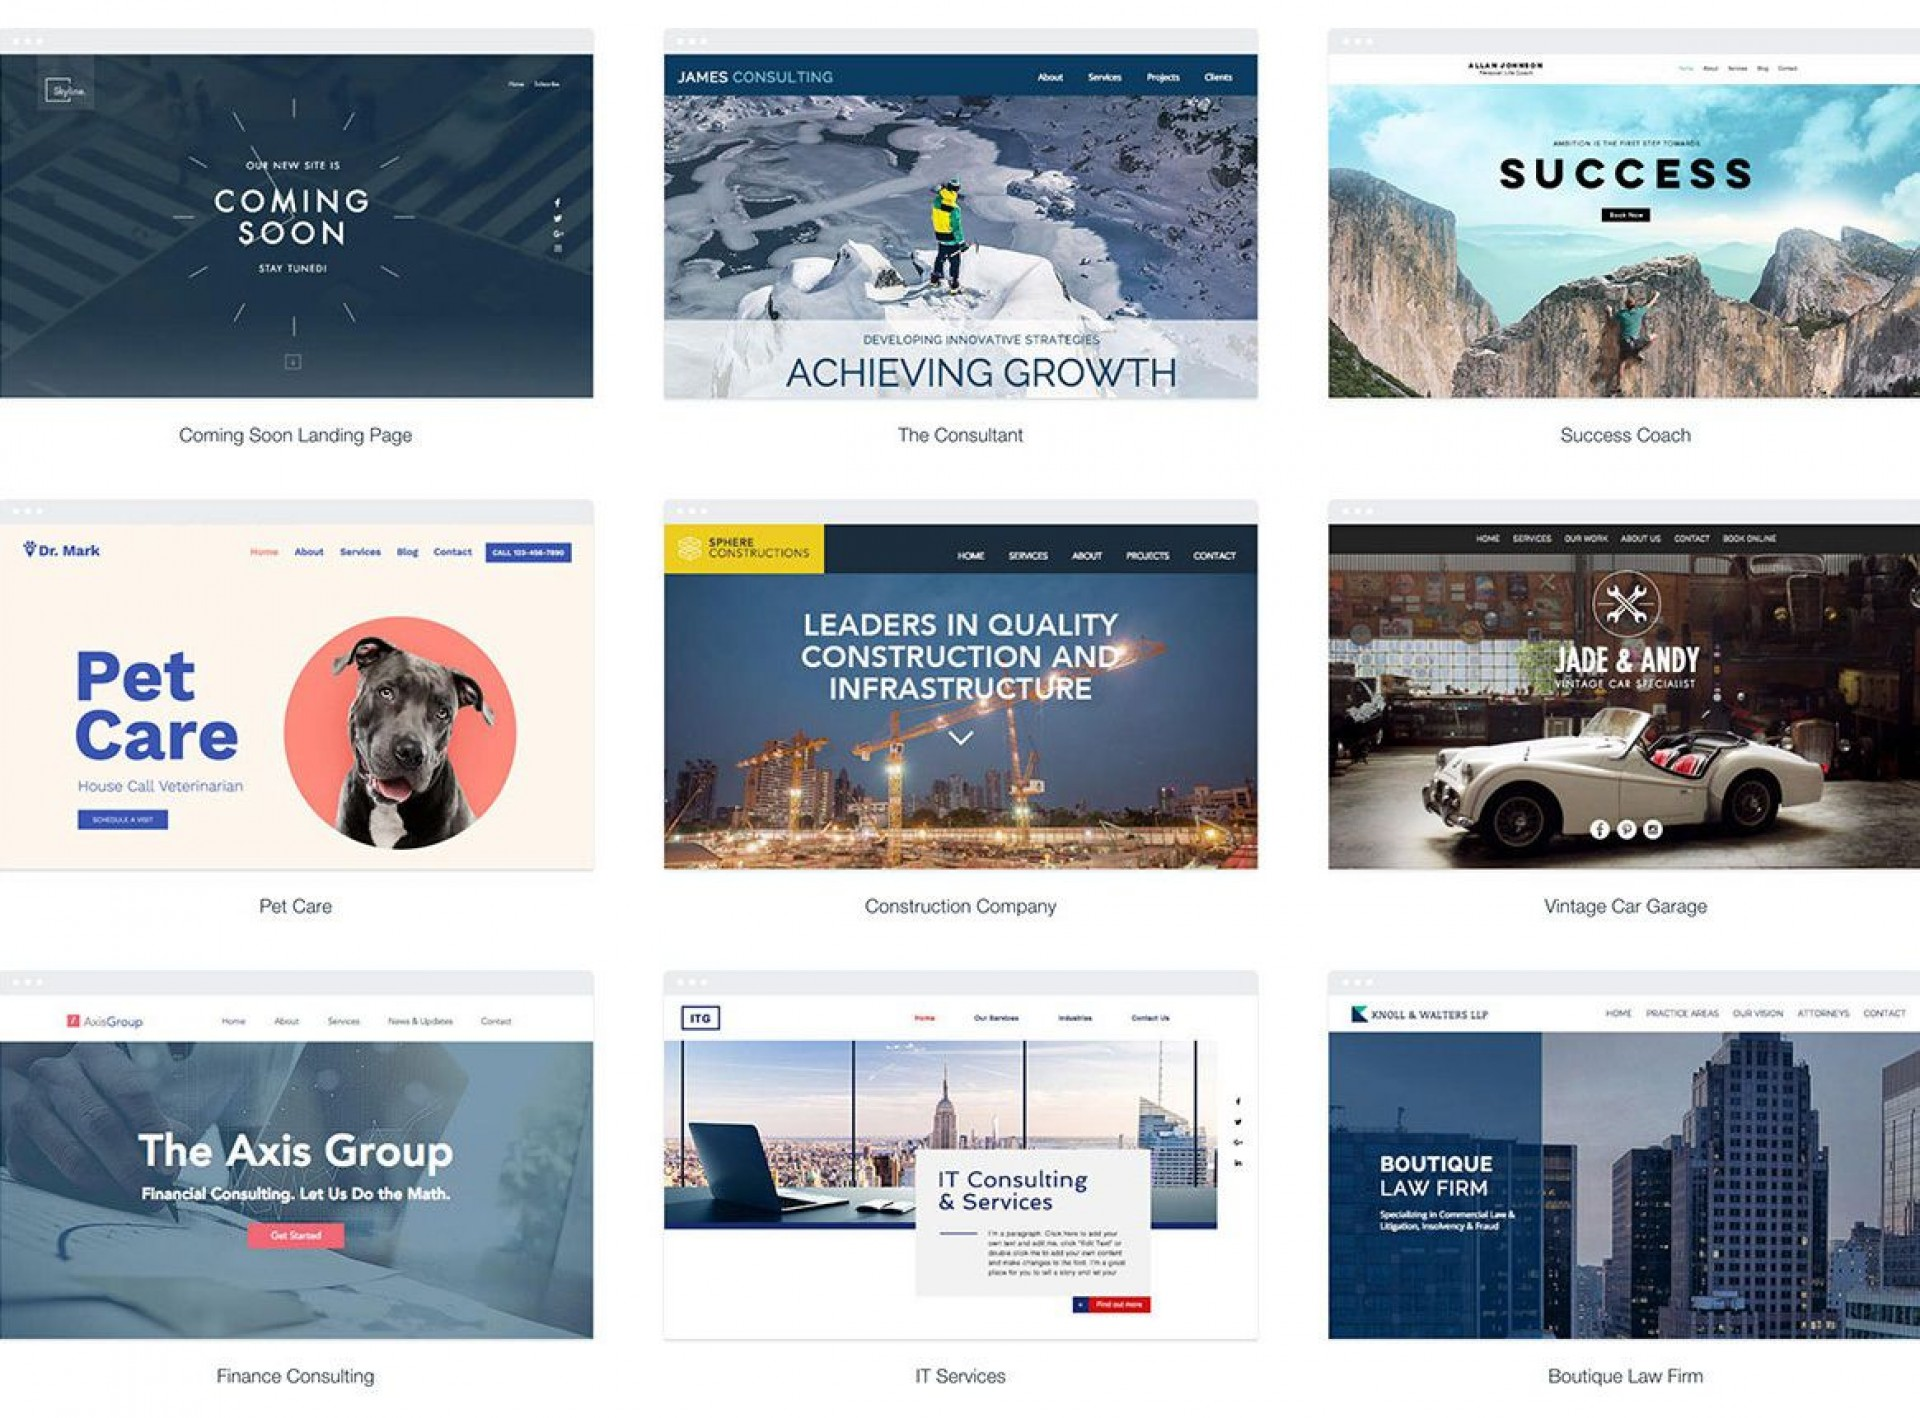 009 Dreaded Free Busines Website Template High Definition  Templates Wordpres For Small Dreamweaver Download Html5 With Css3 Jquery1920